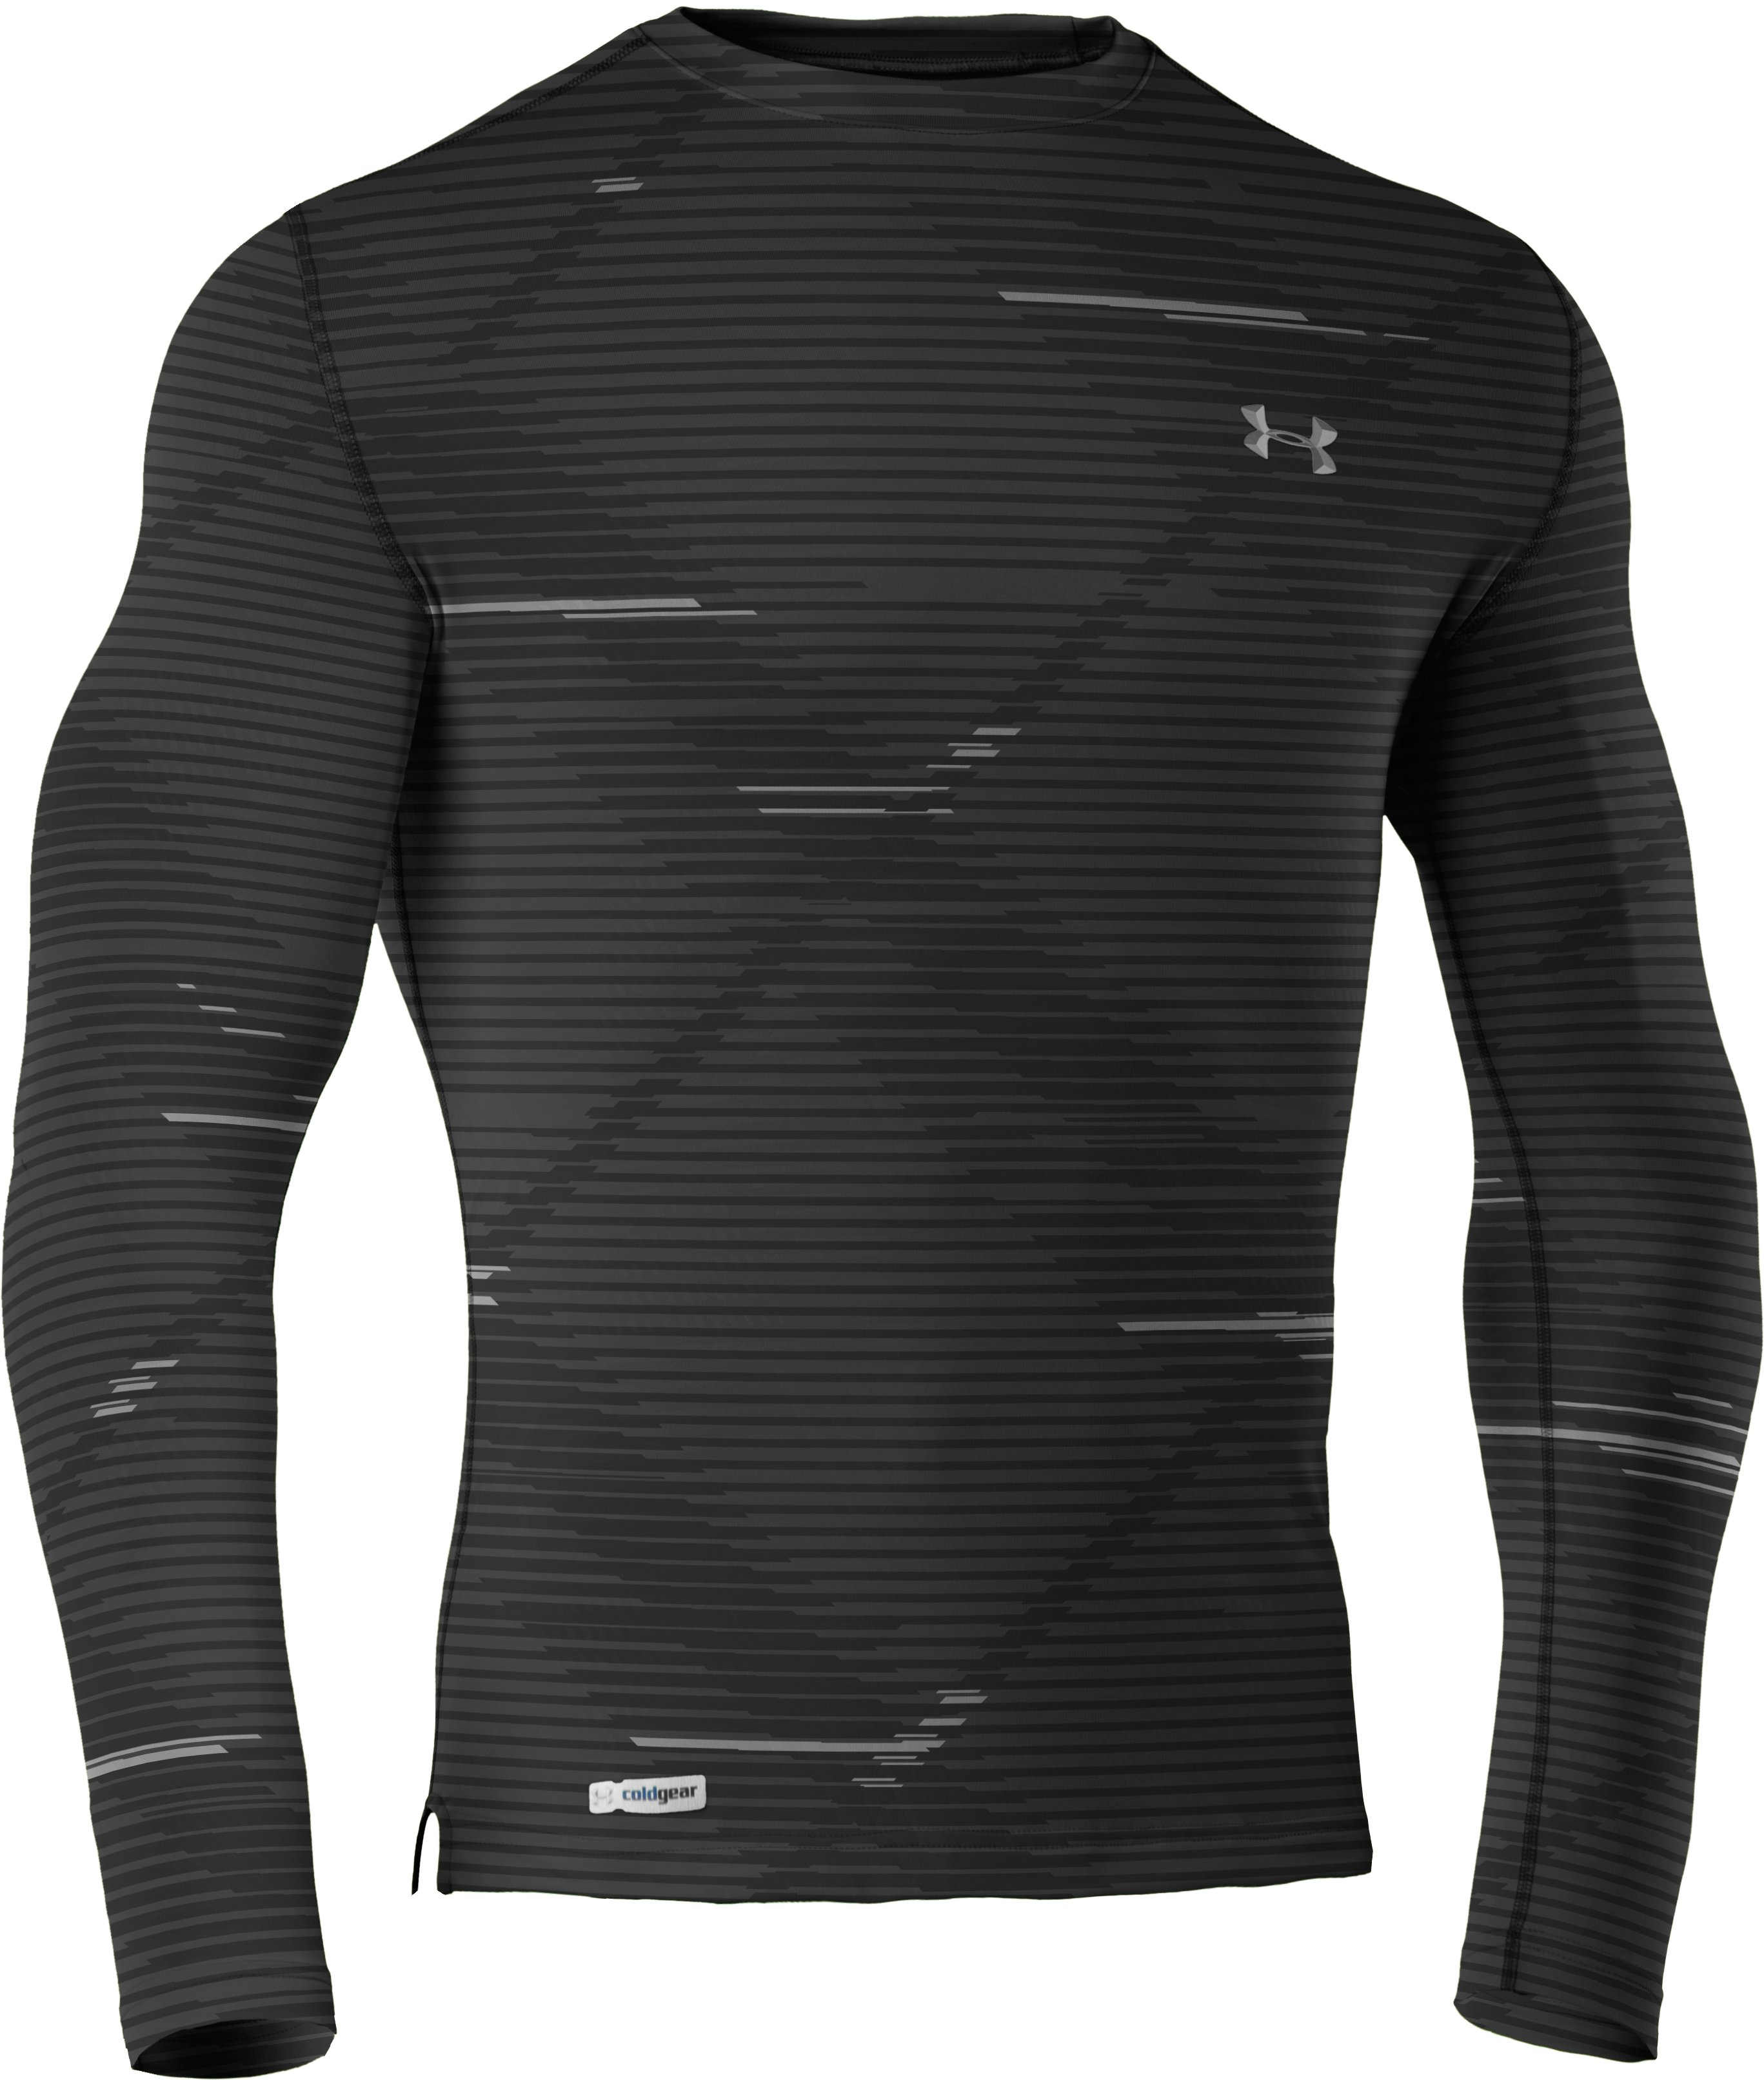 Men's ColdGear® Infrared Evo Printed Fitted Crew, Black